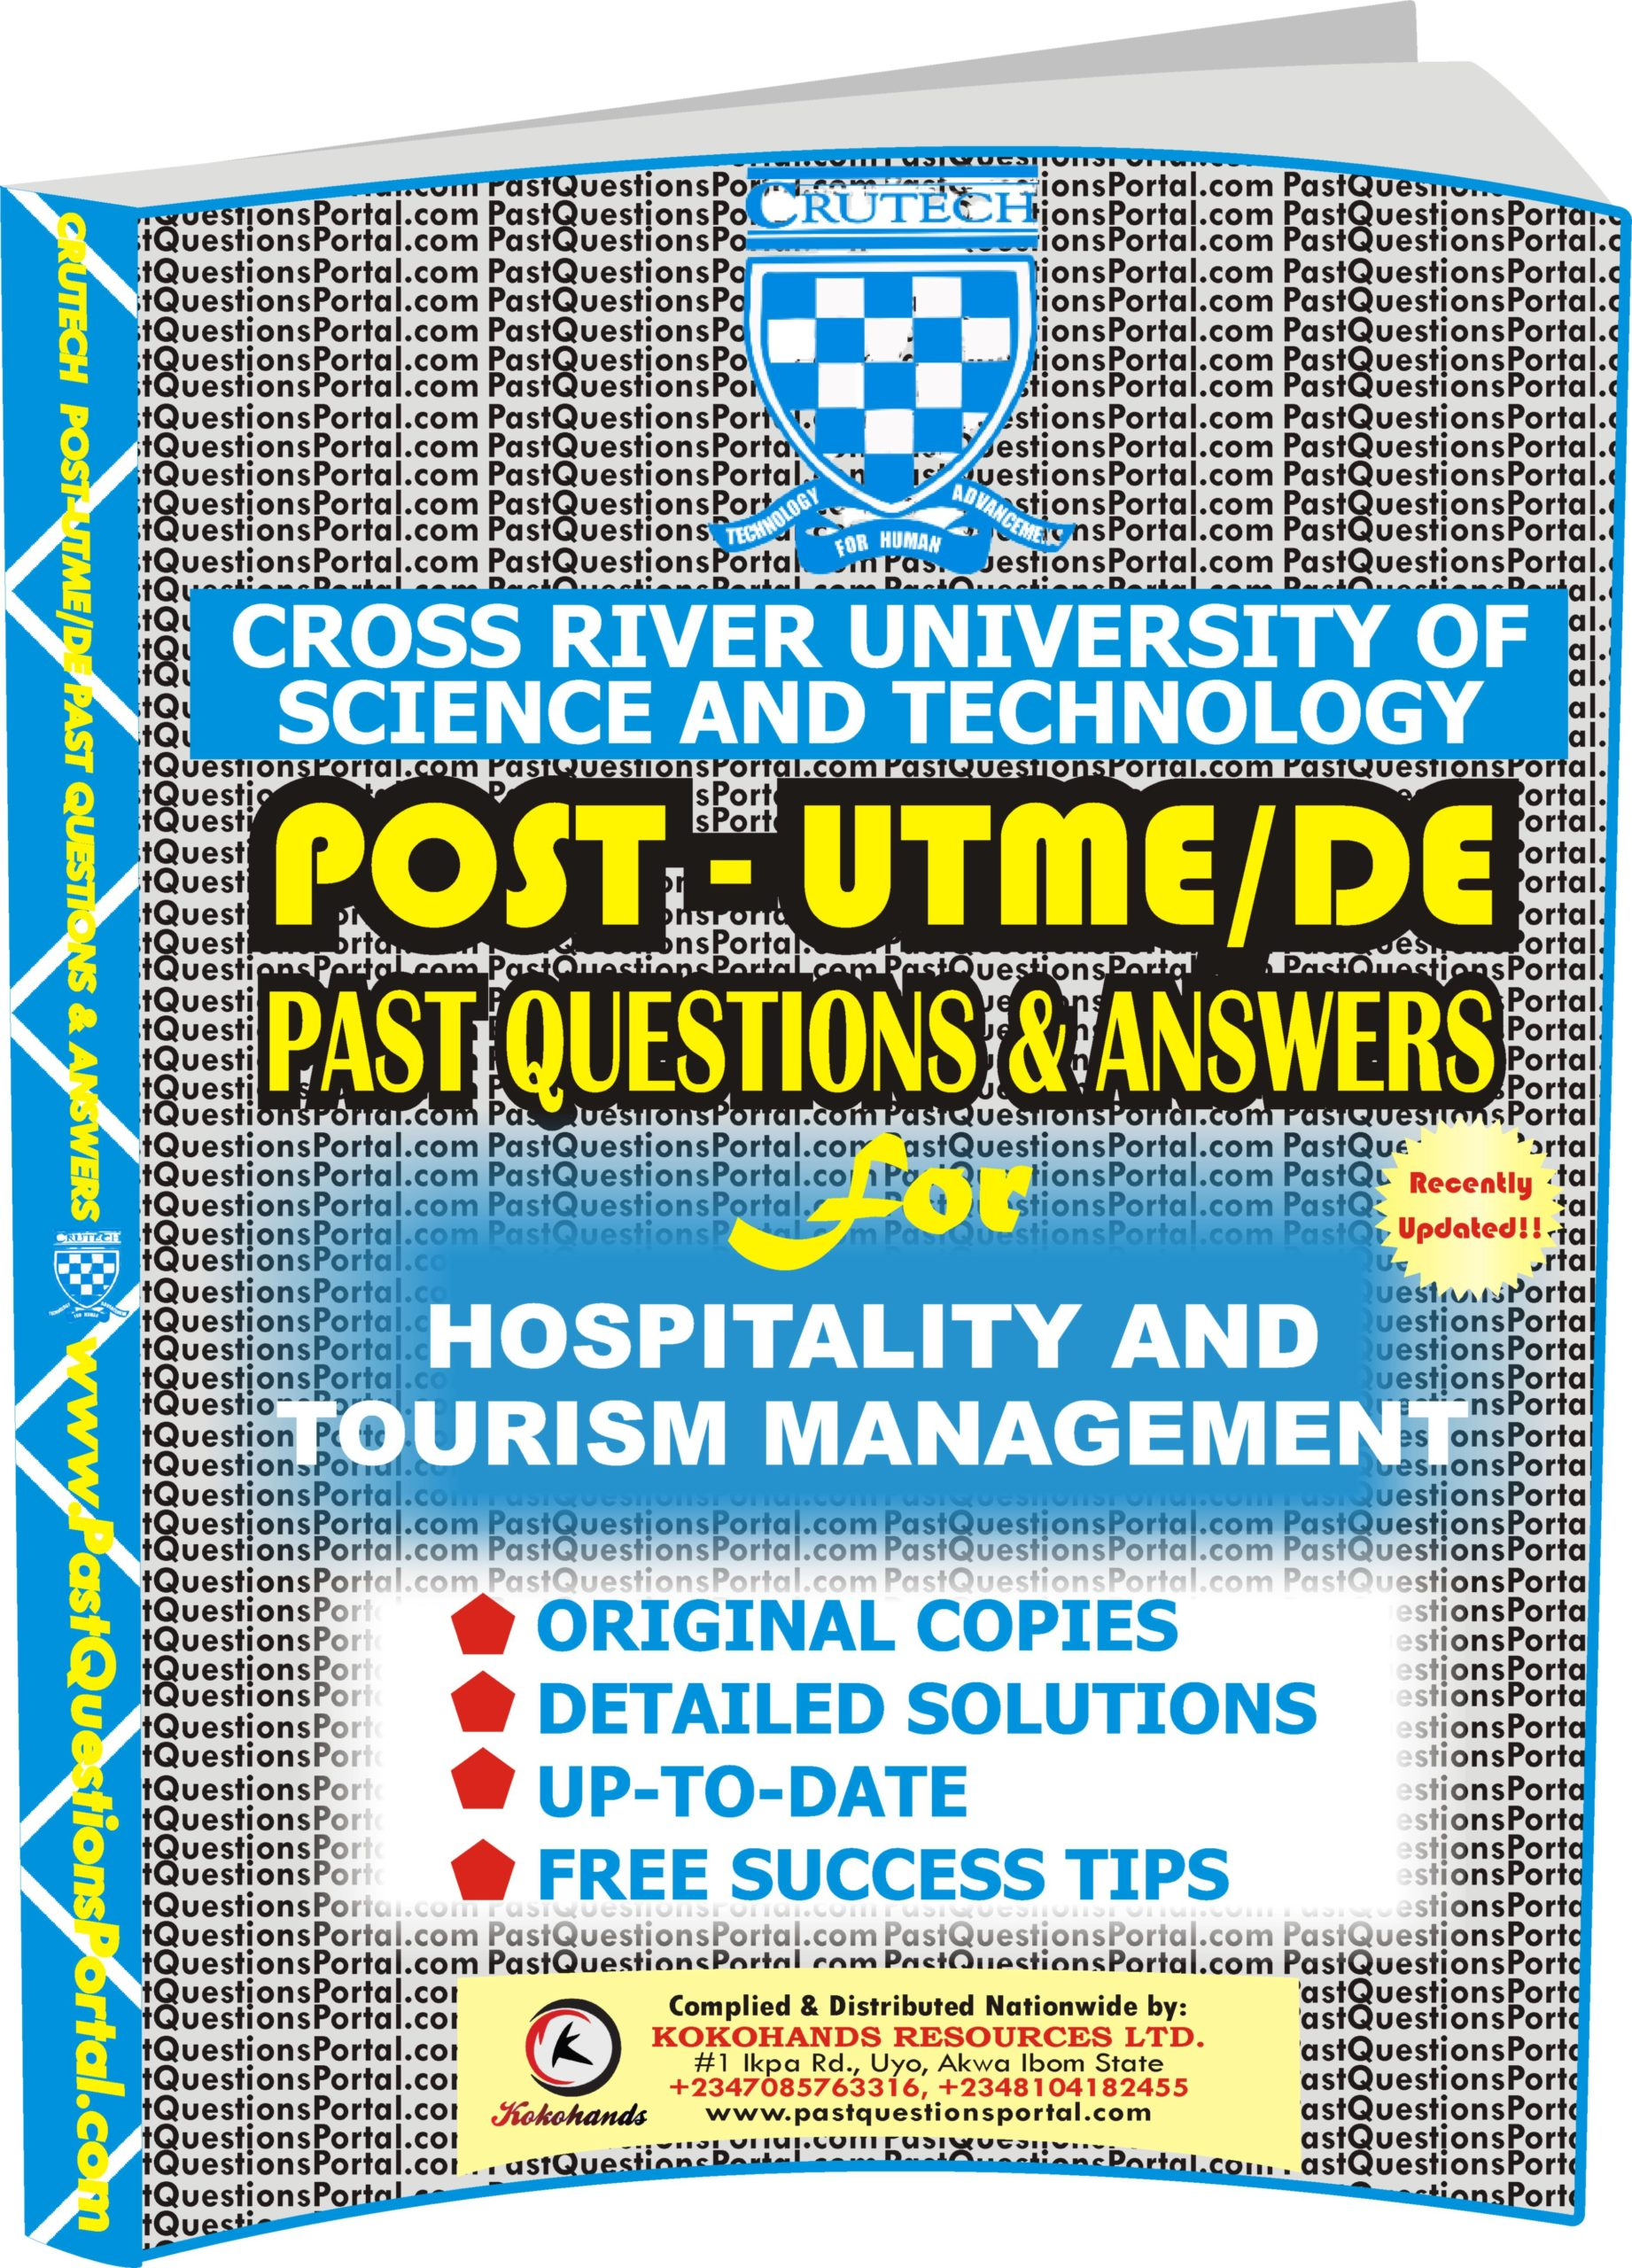 CRUTECH Post UTME Past Questions for Hospitality and Tourism Management